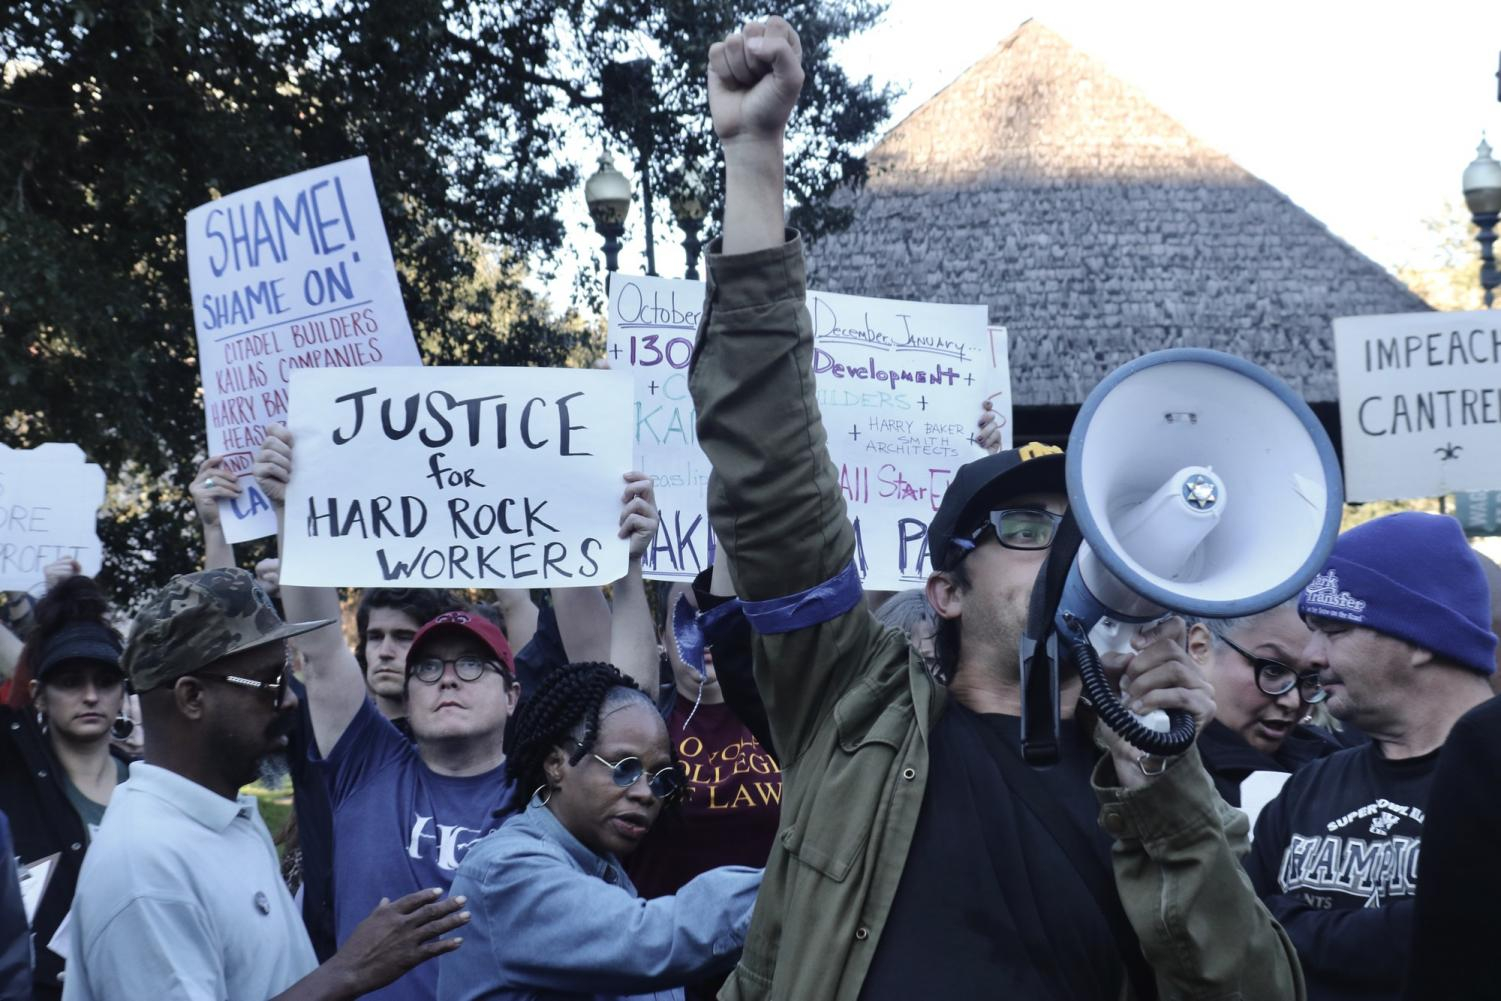 Trey Monaghan leads a march for the Hard Rock collapse victims from the site to Duncan Plaza on January 24. 2020. Photo credit: Andres Fuentes